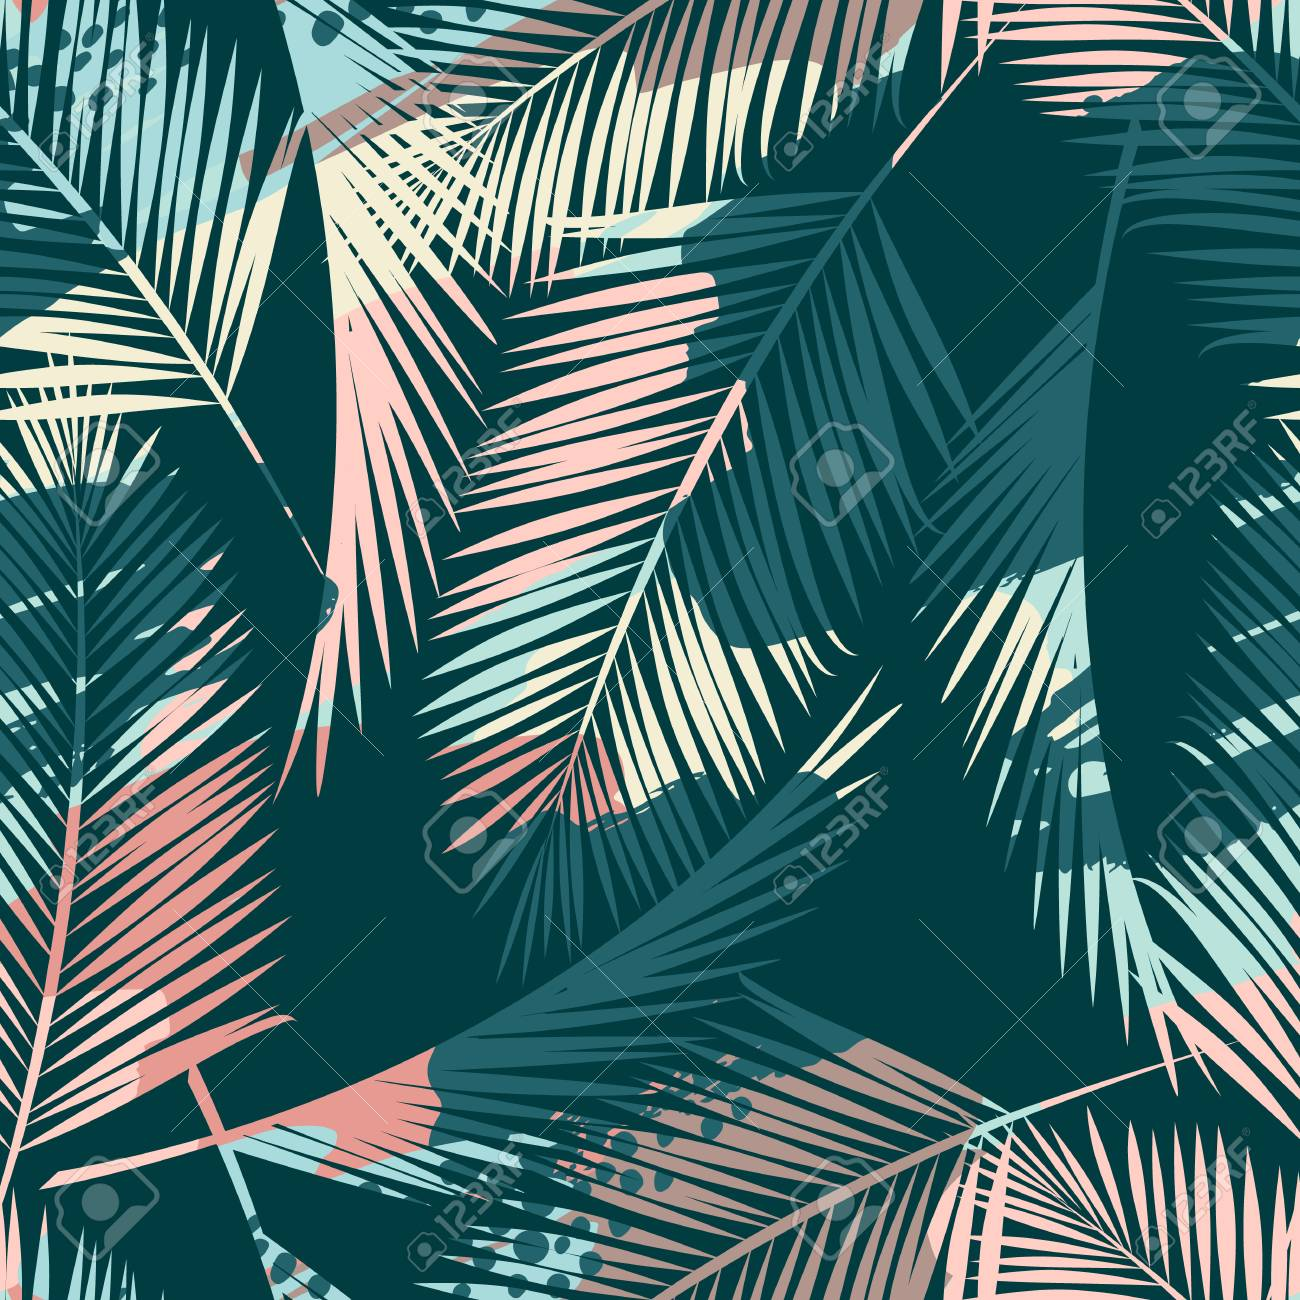 Seamless exotic pattern with tropical plants and artistic background. - 96391665